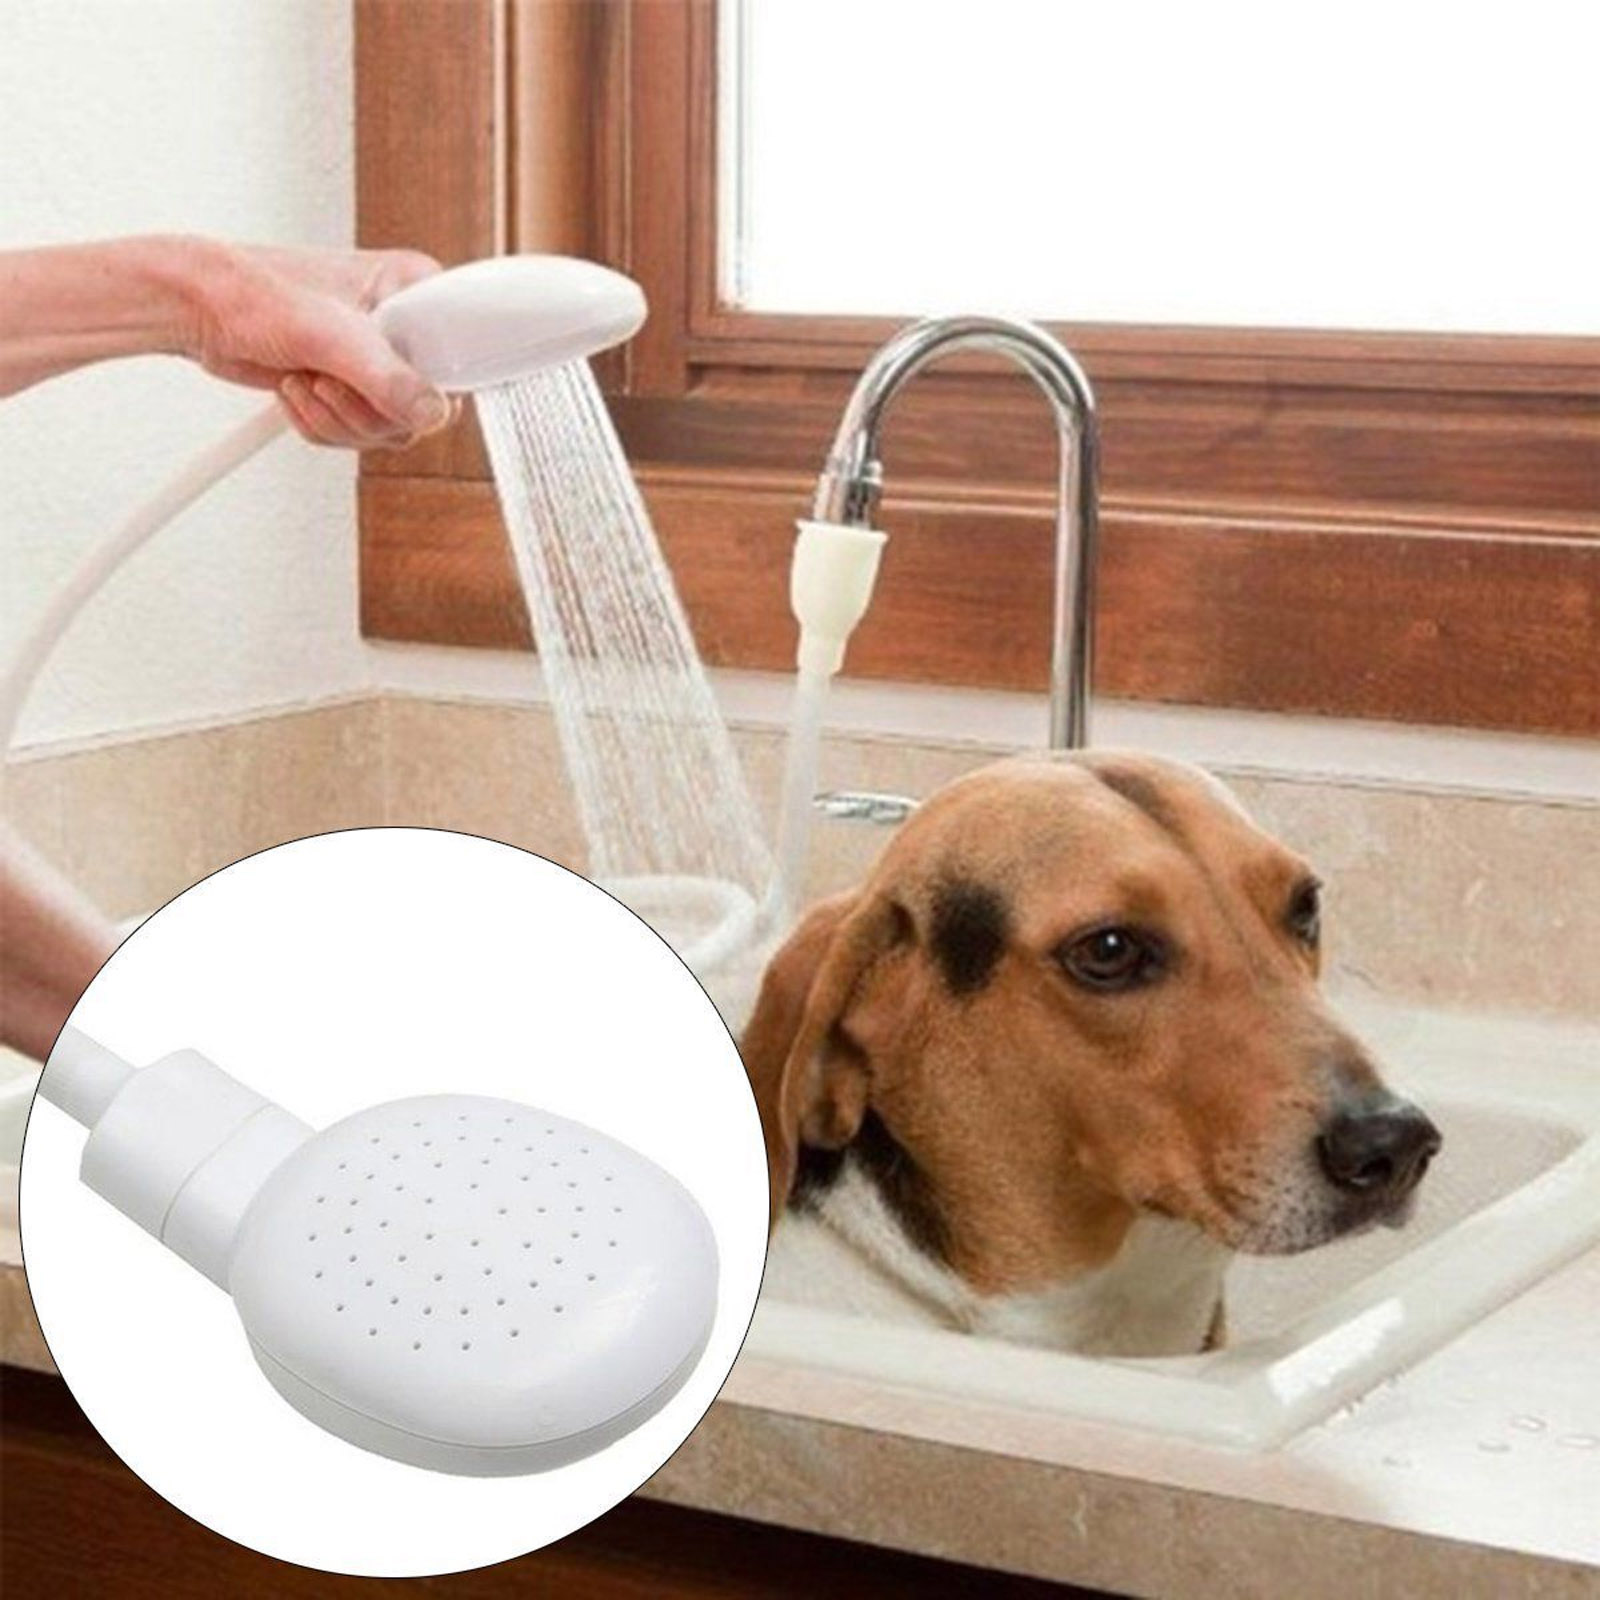 Hair Shower Head Bath Hose Sink Faucet Washing Spray Wash Multi-use ...